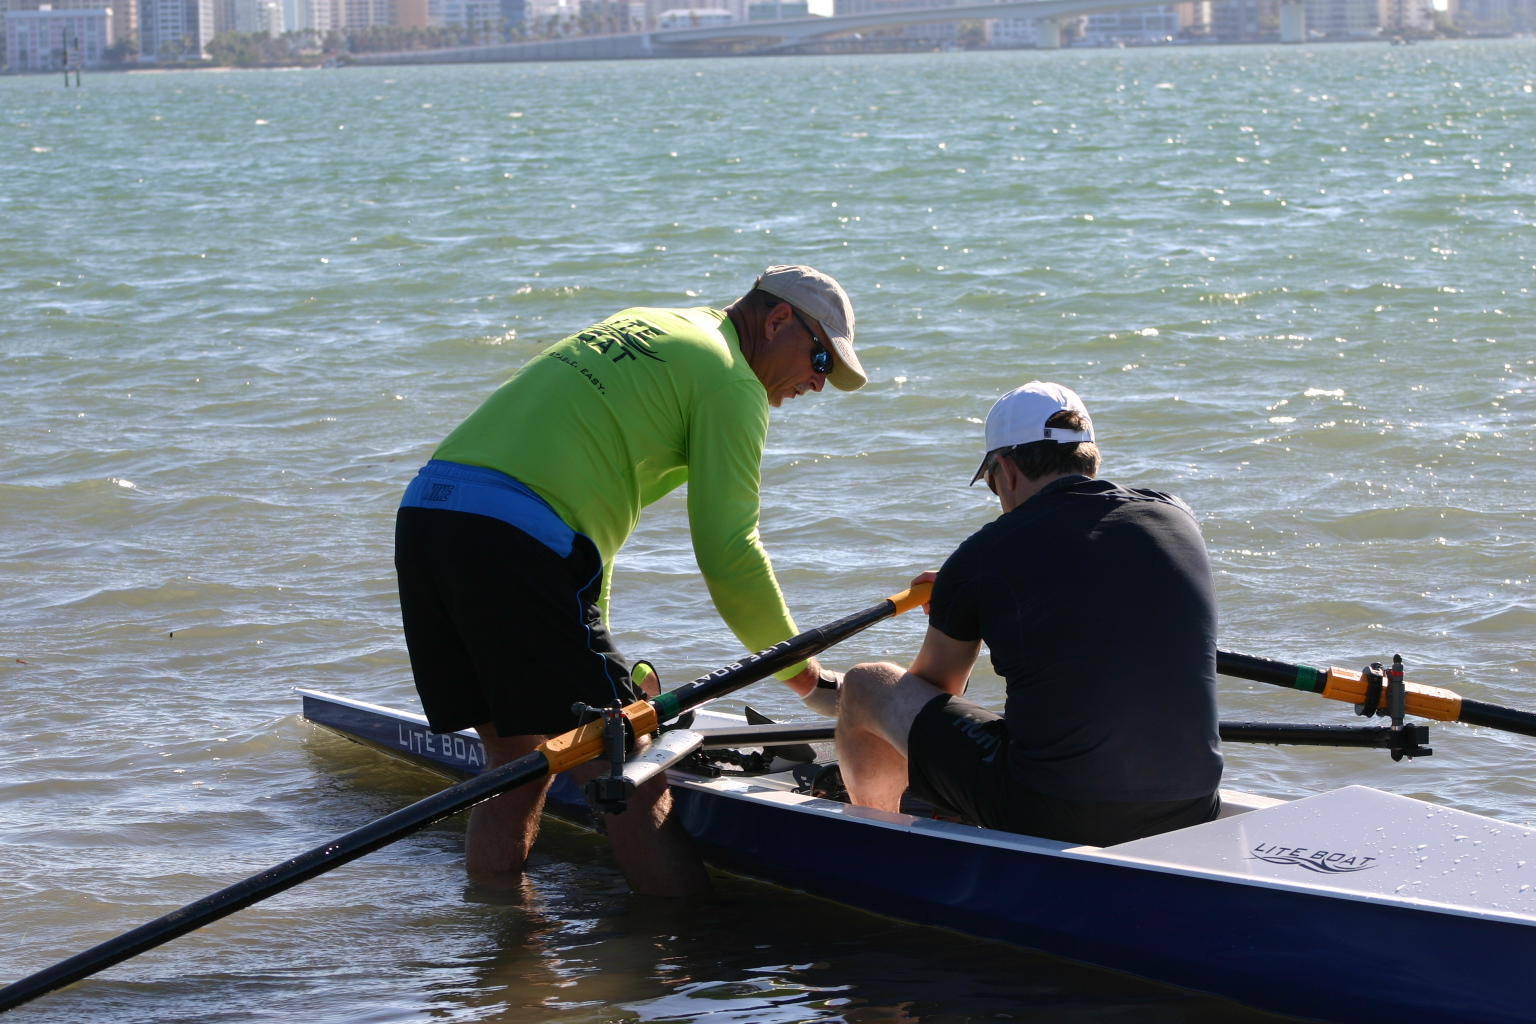 - We had a customer request a demonstration row on February 19, 2018. We met at Ken Thompson Park in Sarasota and he tried a LiteSport 1X and a LiteRace 1X. It was an absolutely beautiful day and he loved the boats!